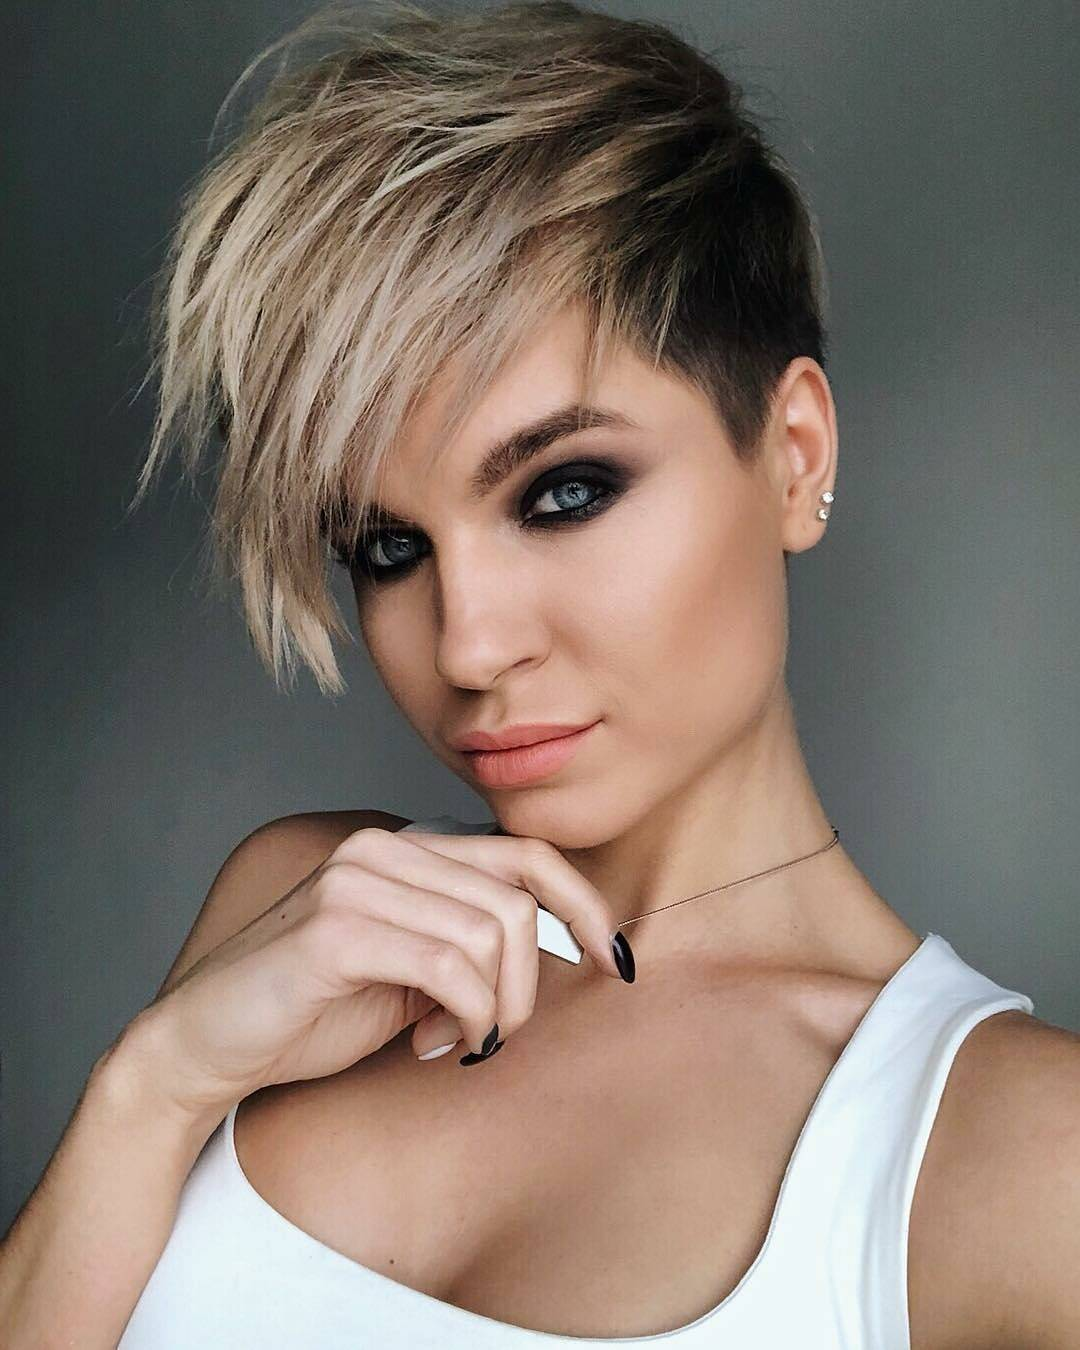 short haircuts for women with thick hair 10 new hairstyles for thick hair 2019 9827 | chic short hairstyles for thick hair women short haircut 2018 3